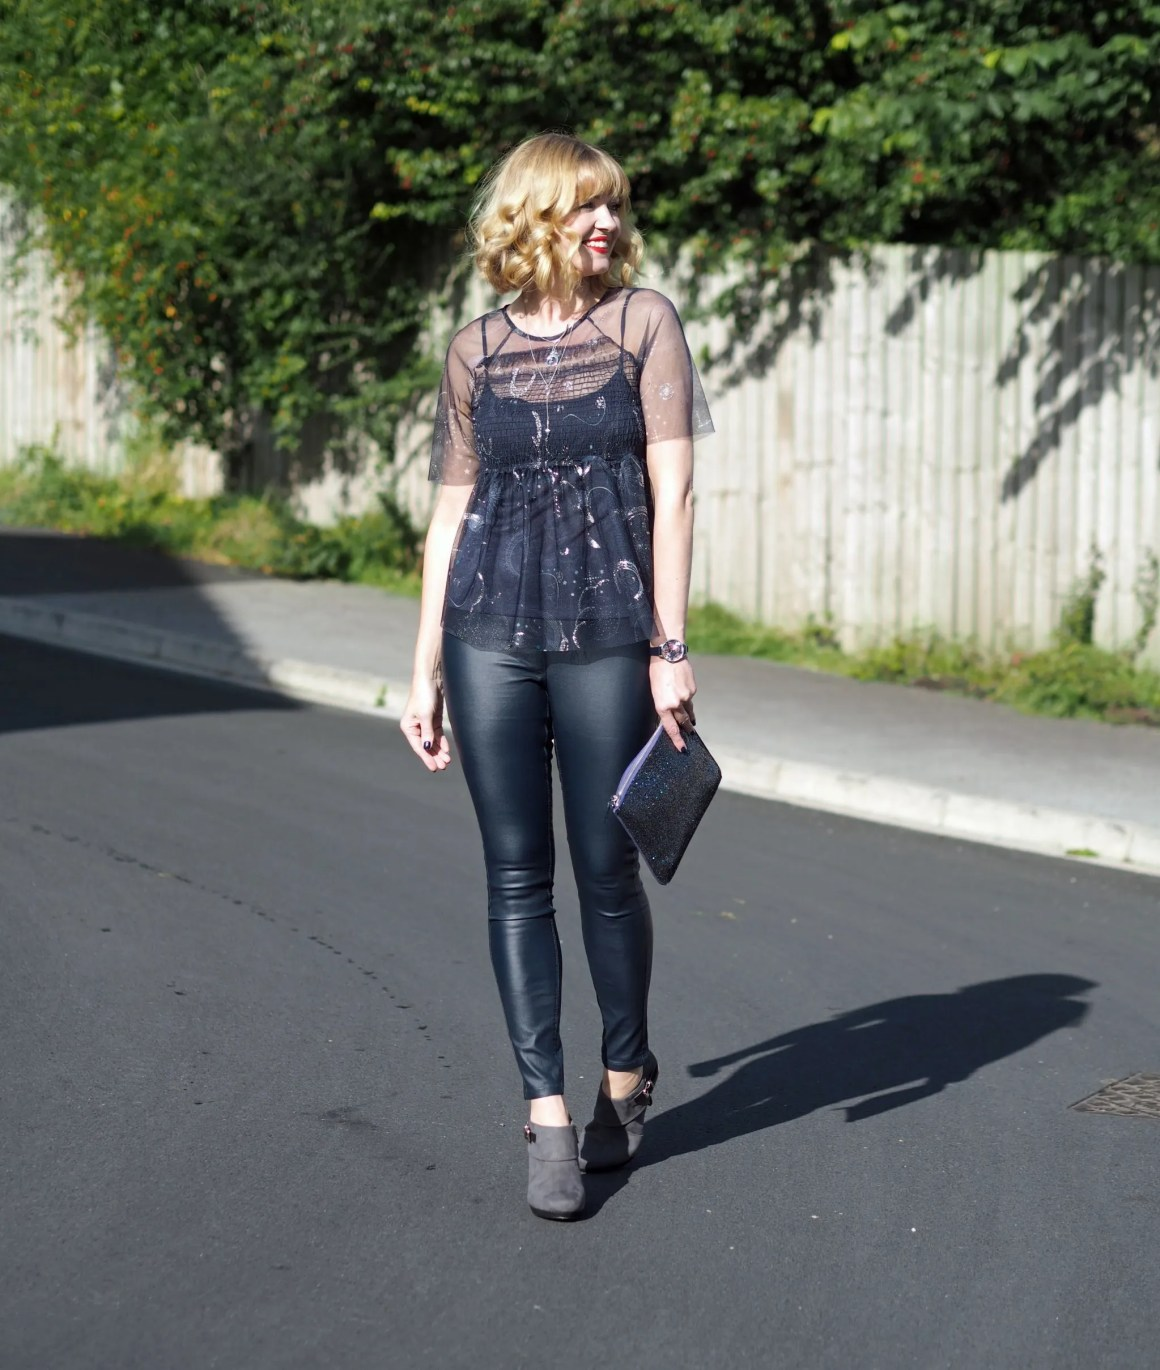 what-lizzy-loves-coated-skinnies-leggings-high-heeled-ankle-boots- constellation-top